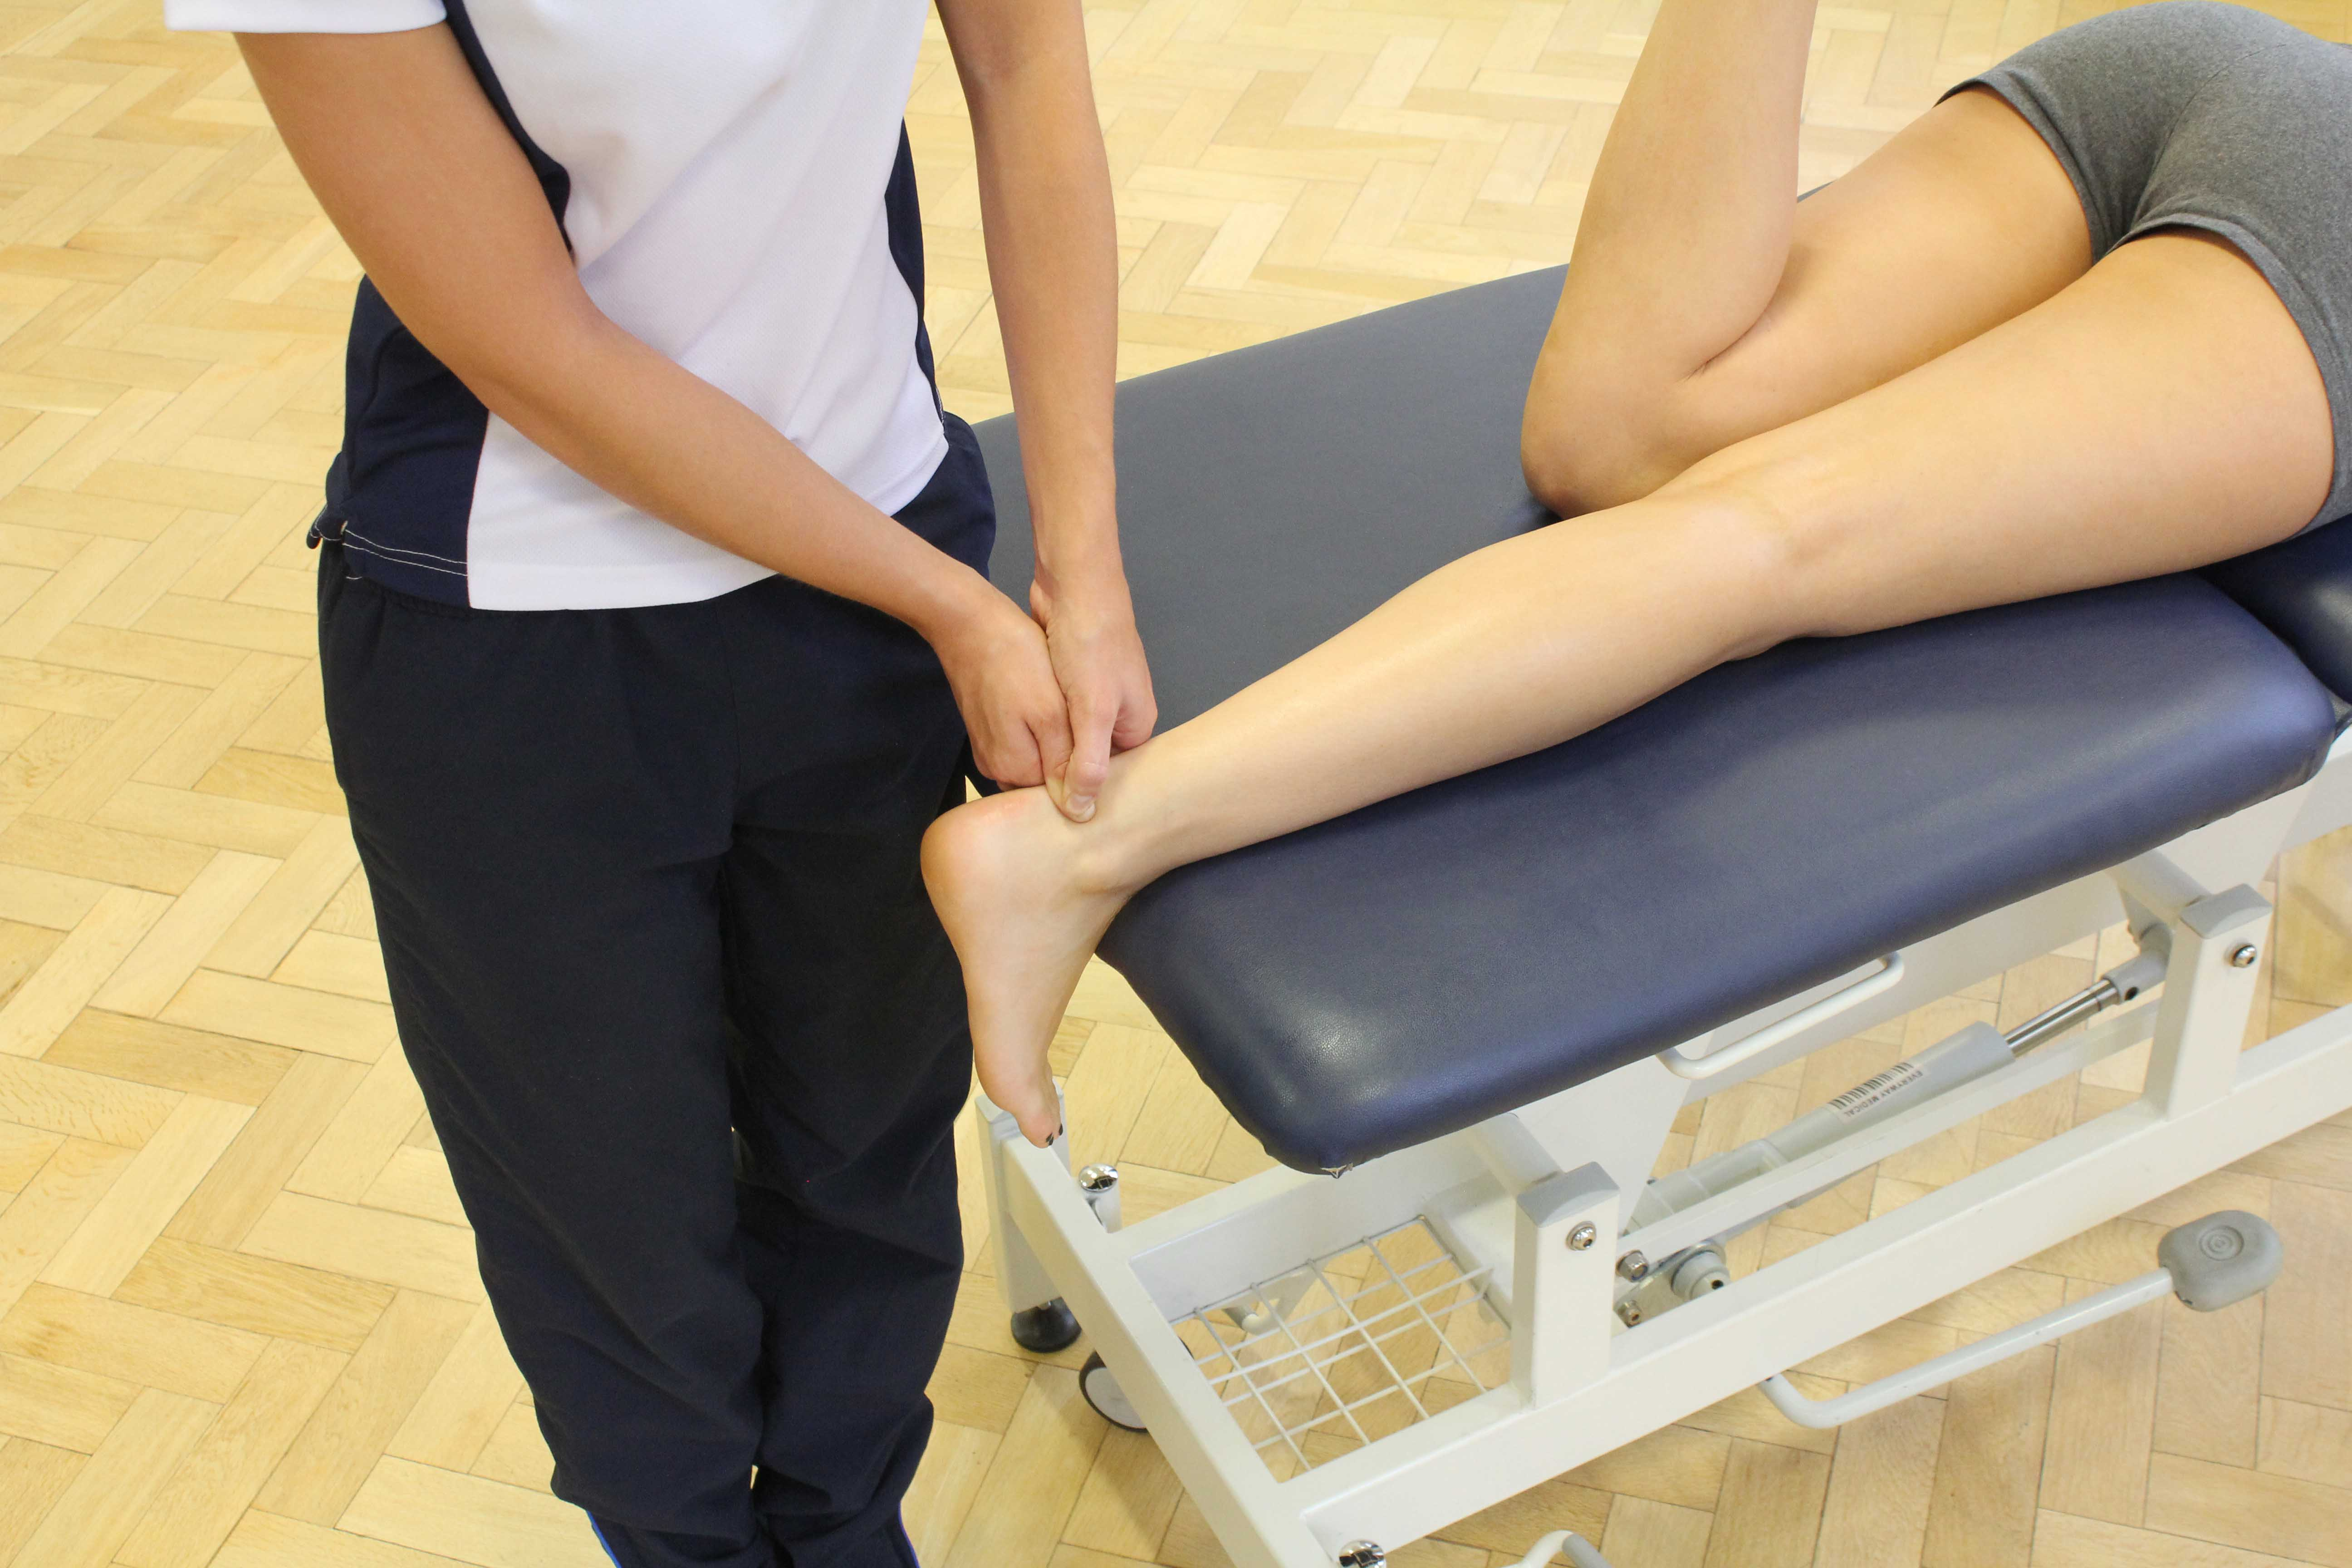 Friction massage applied to the achilles tendon by specialist therapist